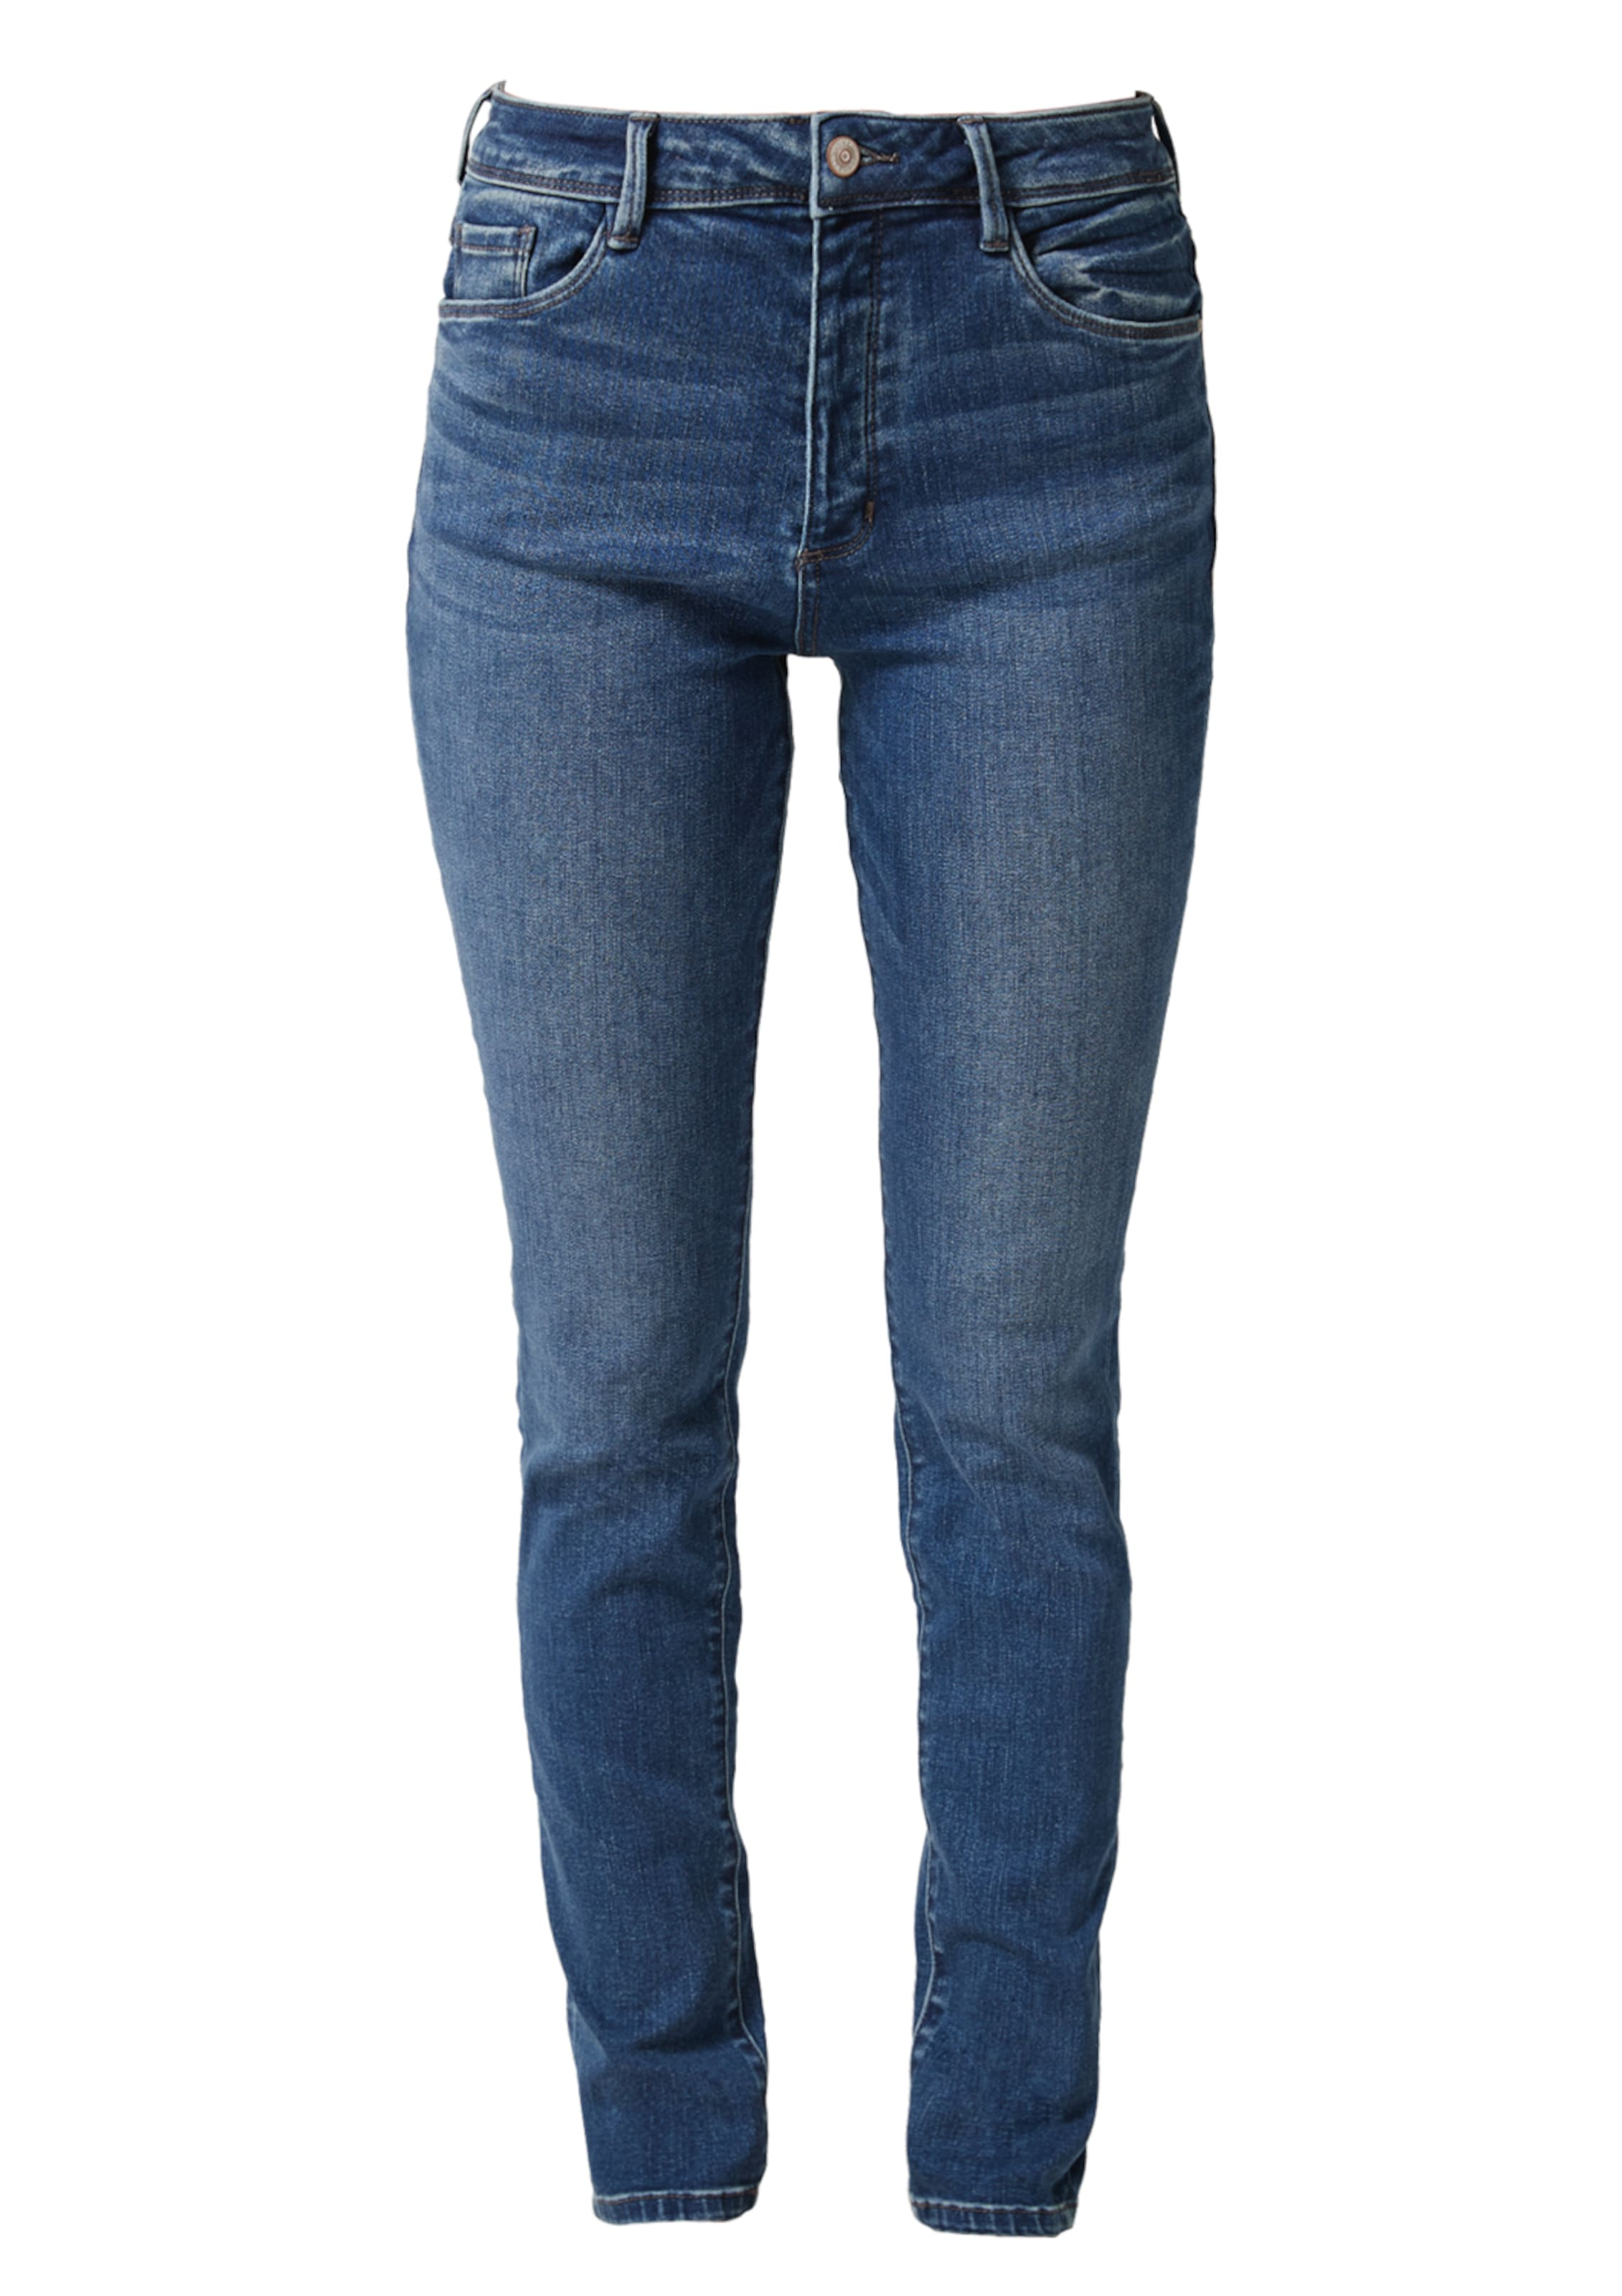 S Denim Jeans Blue oliver In W9DIHYE2